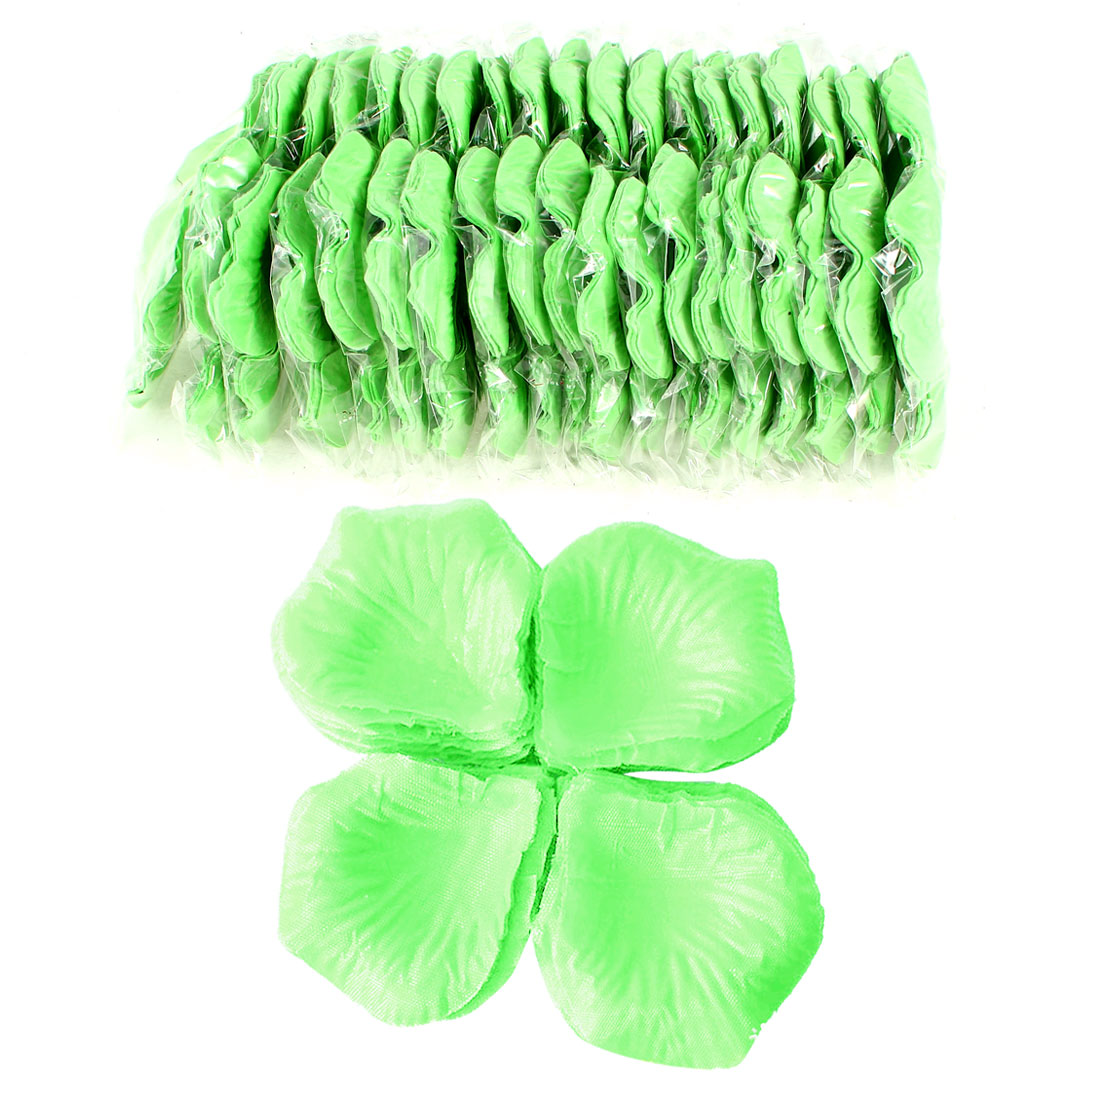 2000 Pcs Green Artificial Silk Flower Rose Petals Wedding Bridal Party Decorations